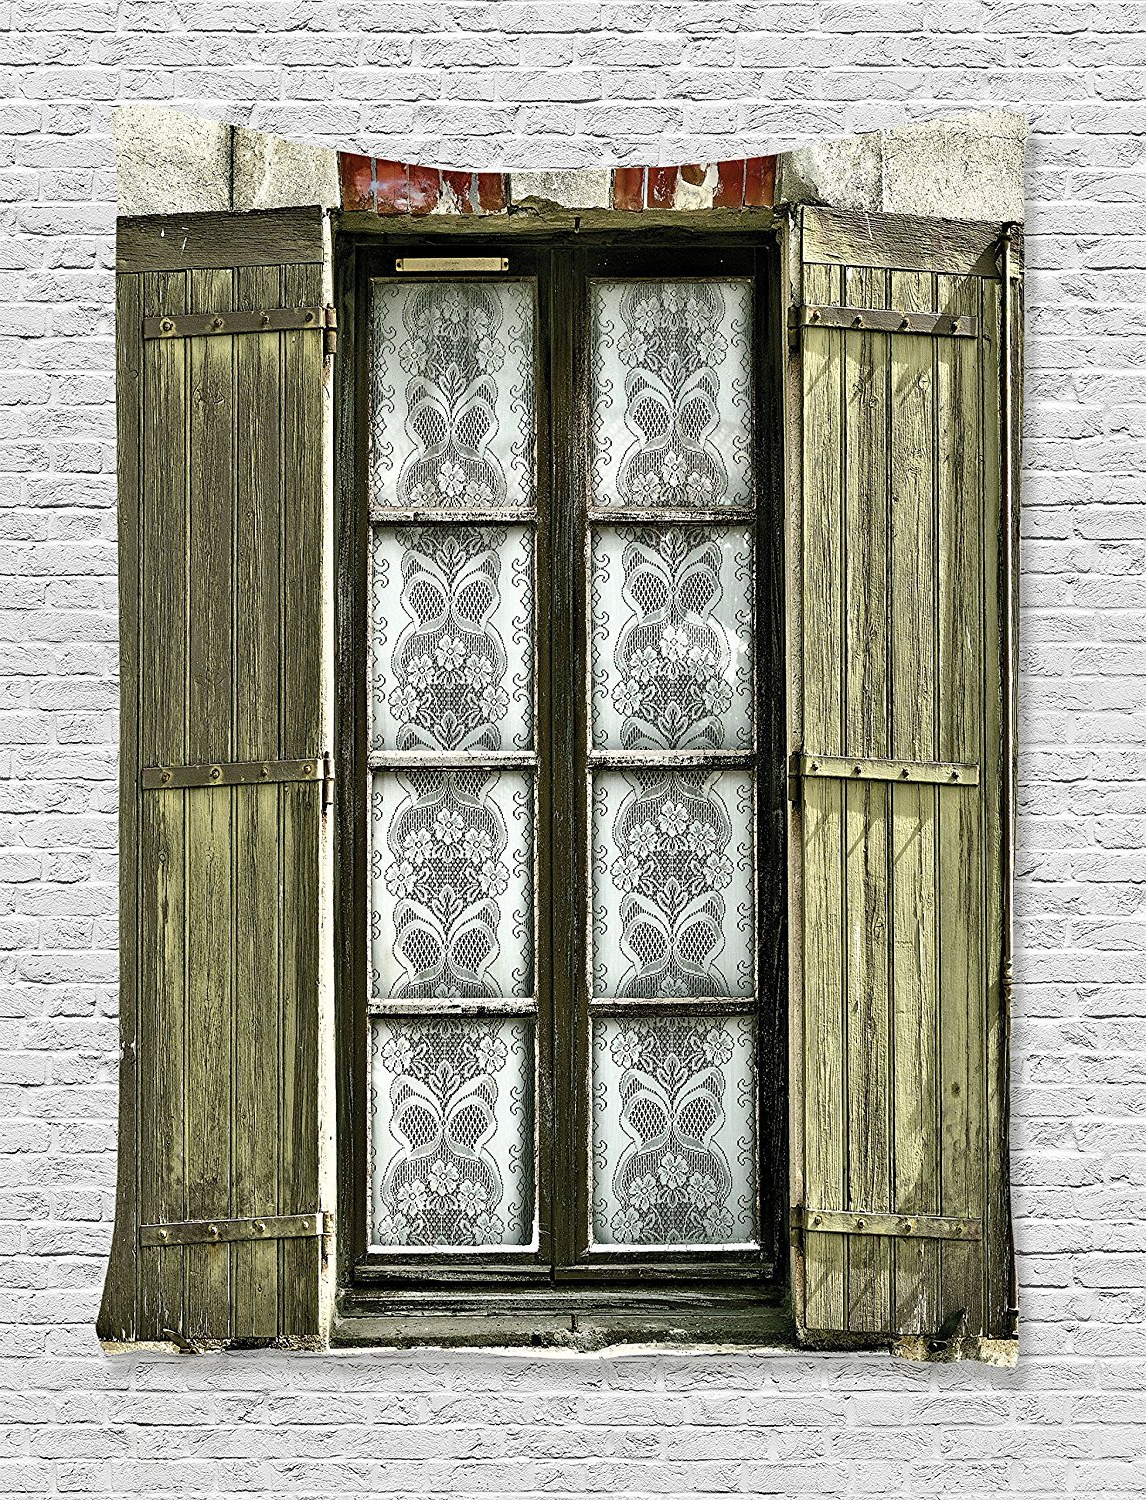 Amazon: Ambesonne Shutters Decor Collection, European French Pertaining To Most Up To Date Shutter Window Hanging Wall Decor (View 6 of 20)